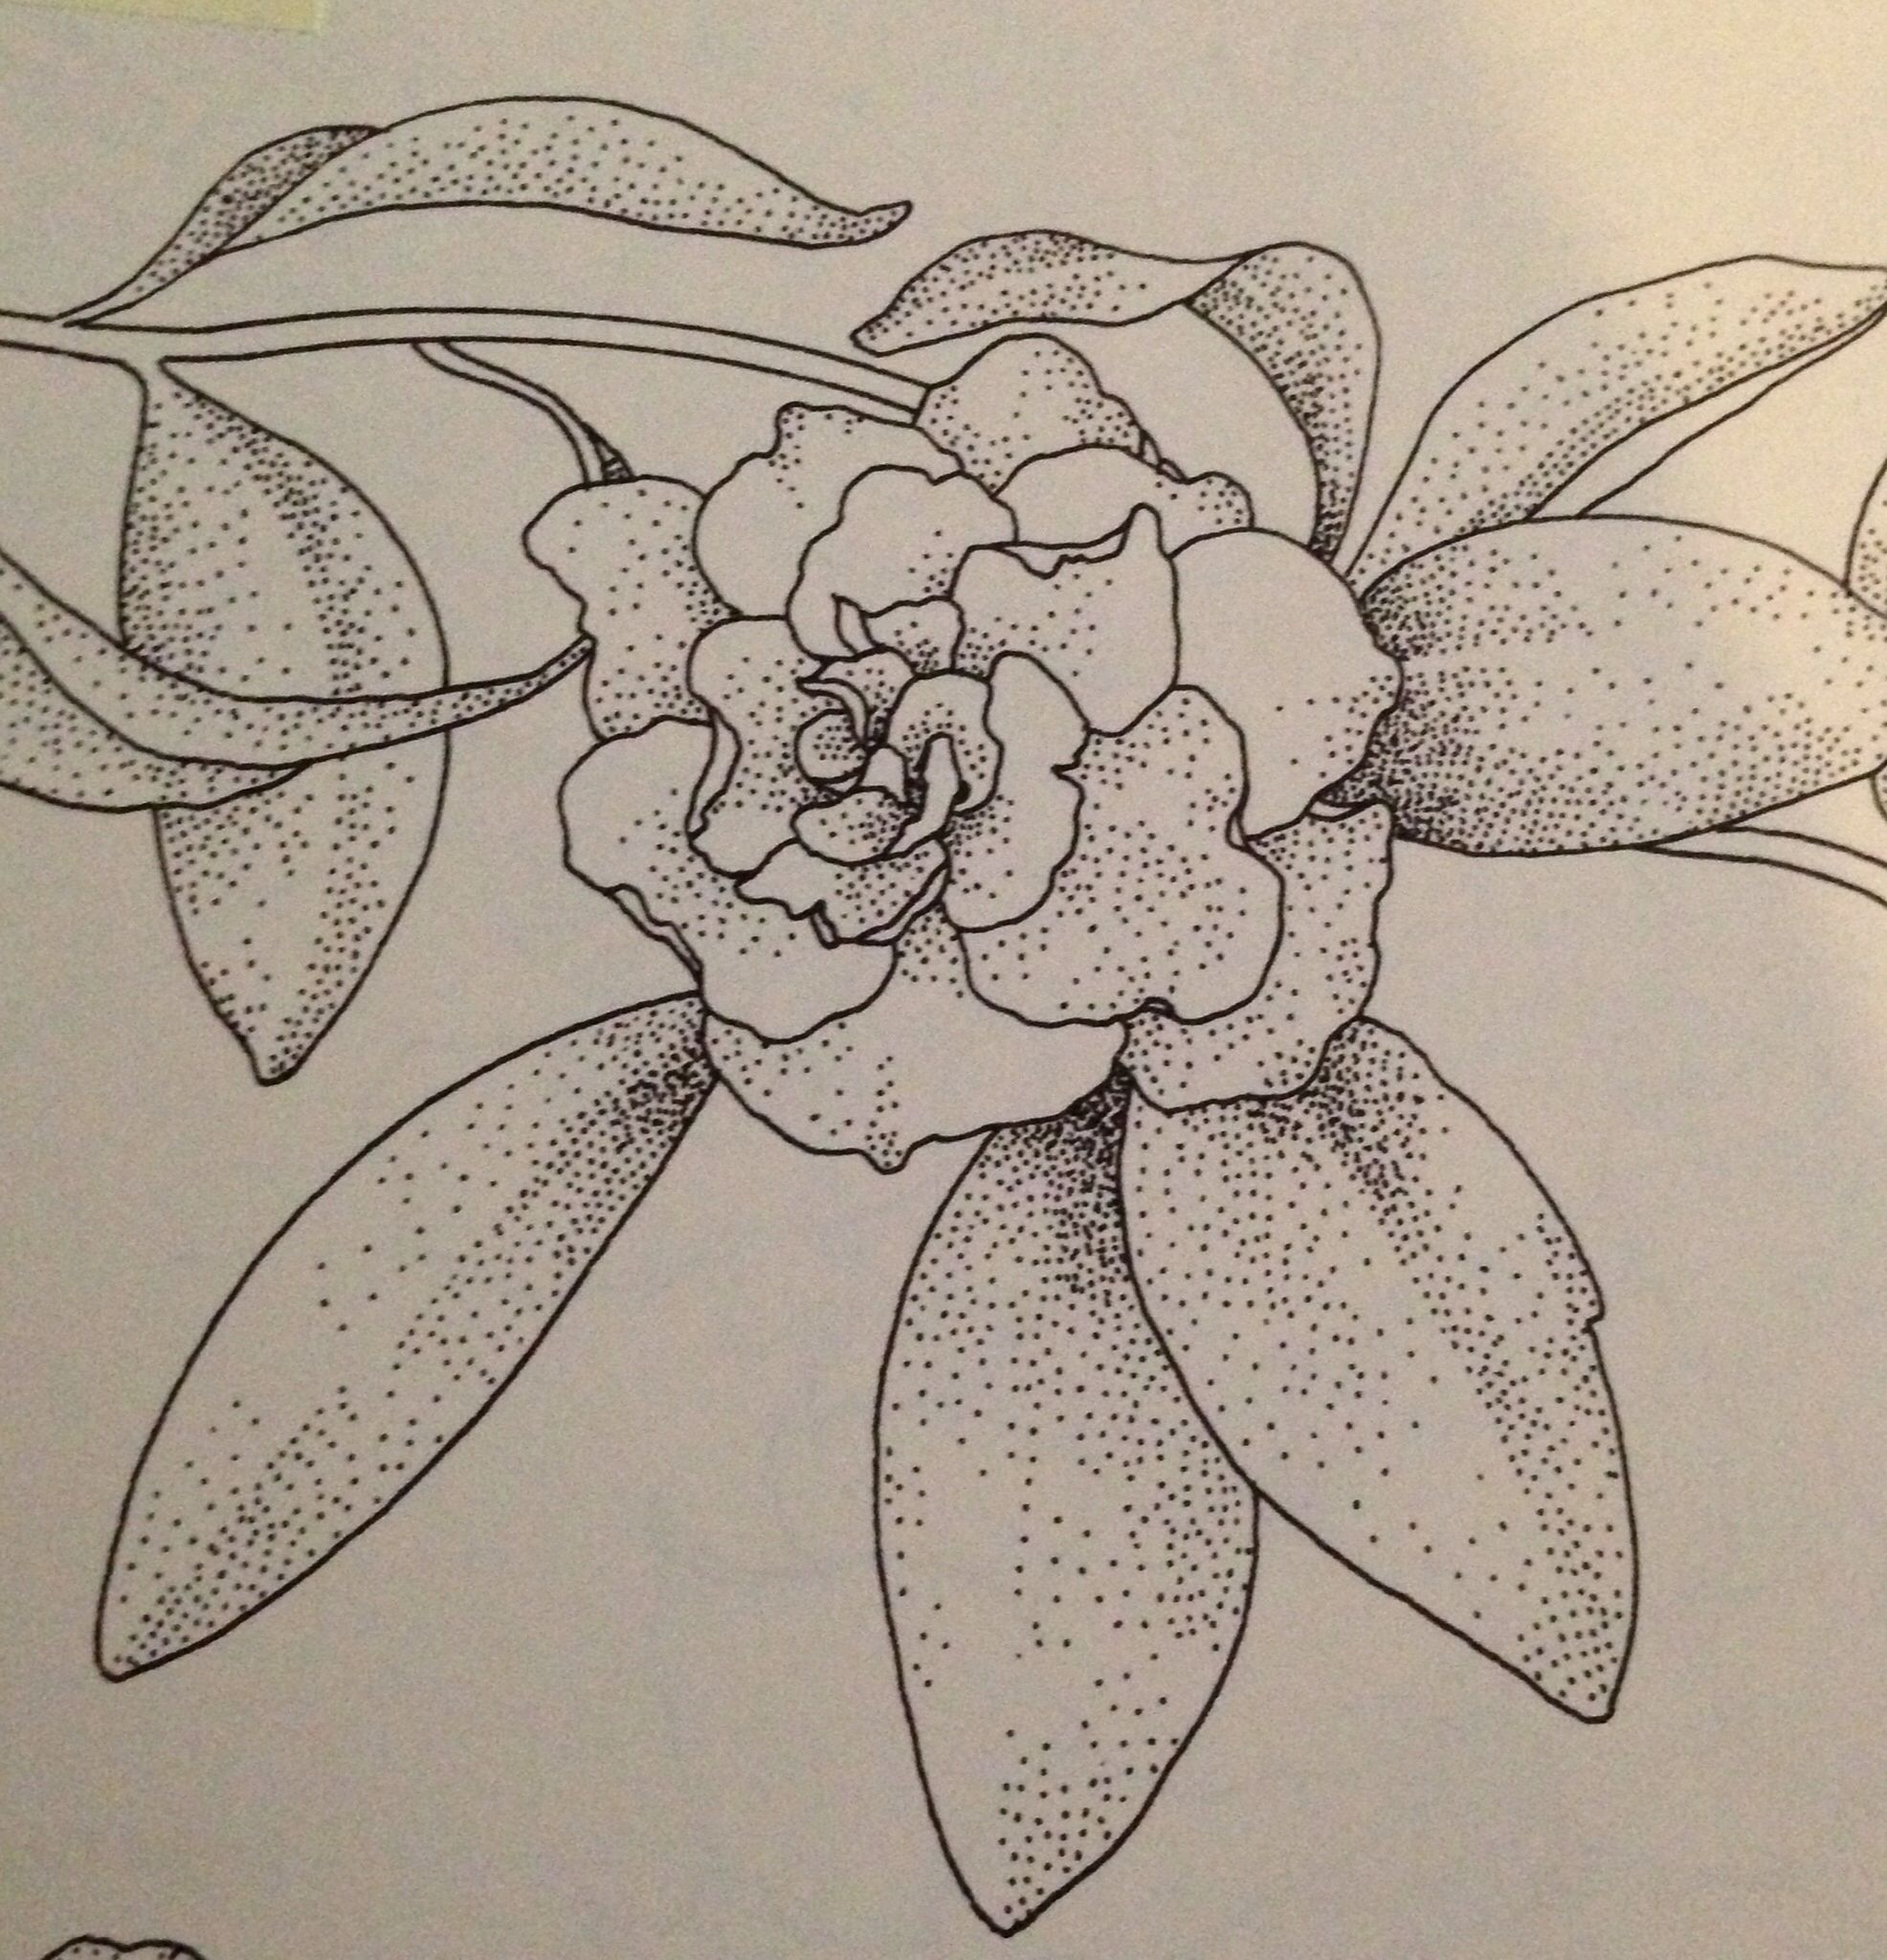 Gardenia, signifies joy, purity, secret love and is associated with thoughts of beauty. Drawn by me, endlesshopestudio